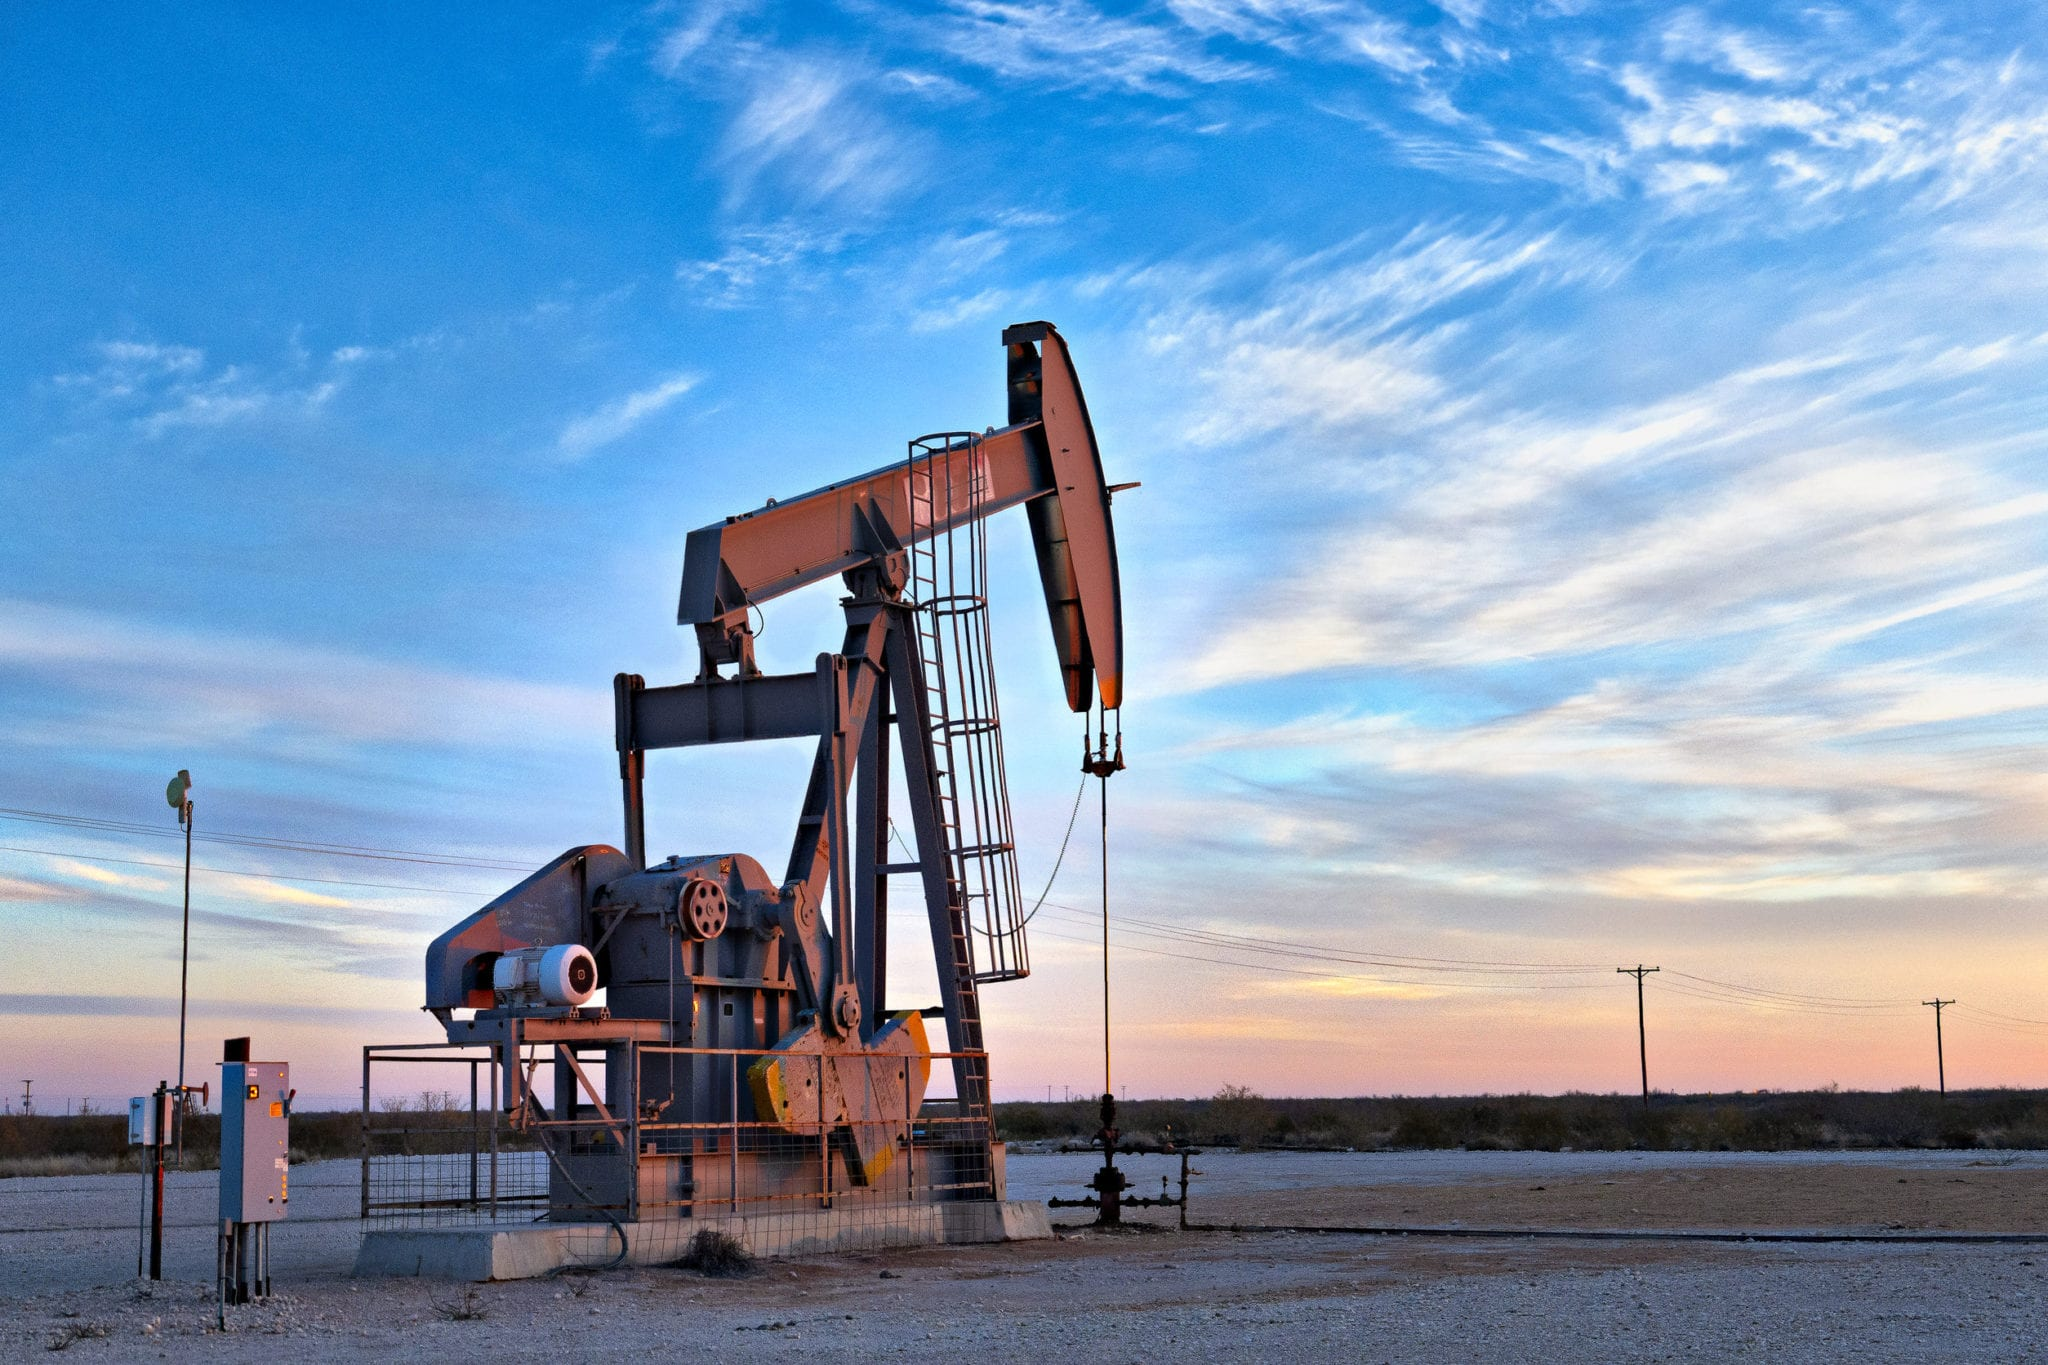 Texas-based Nonprofit Holds Concert to Aid Oil Workers' Families